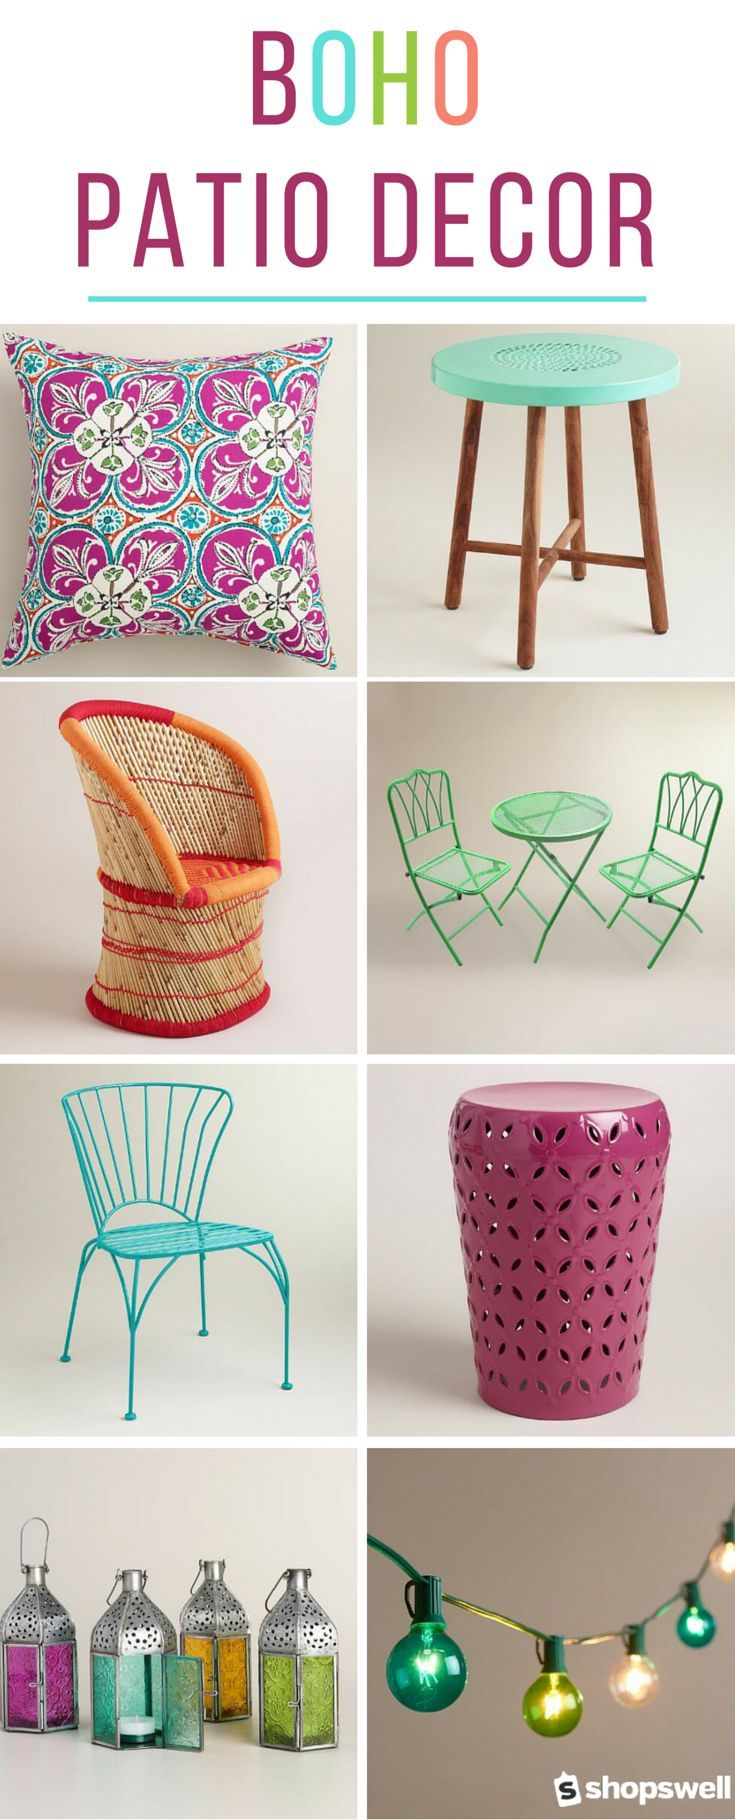 Decor: A Colorful Bohemian Patio for Less | Warm color palettes ...